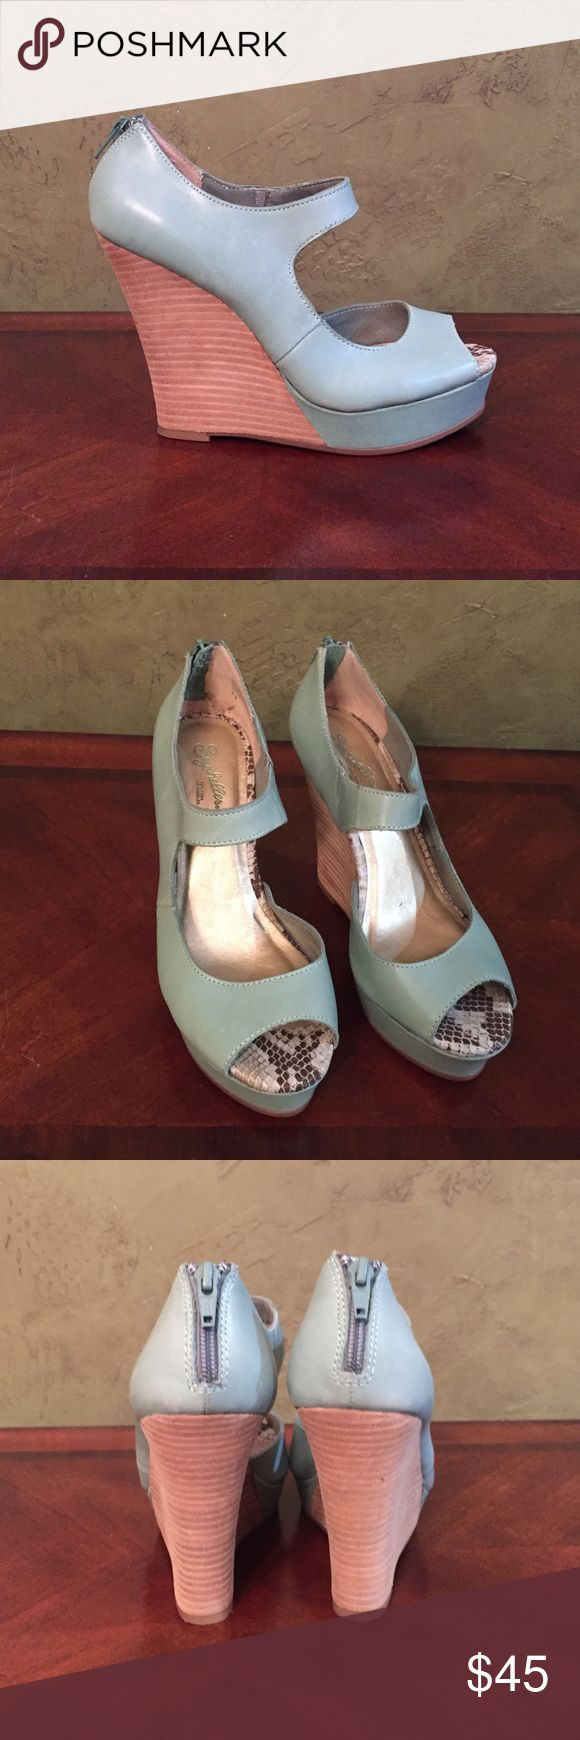 Muted mint wedges Seychelles wedges. Size 7.5. Excellent condition/Like new. Beautiful muted mint or sea foam green color. Seychelles Shoes Wedges